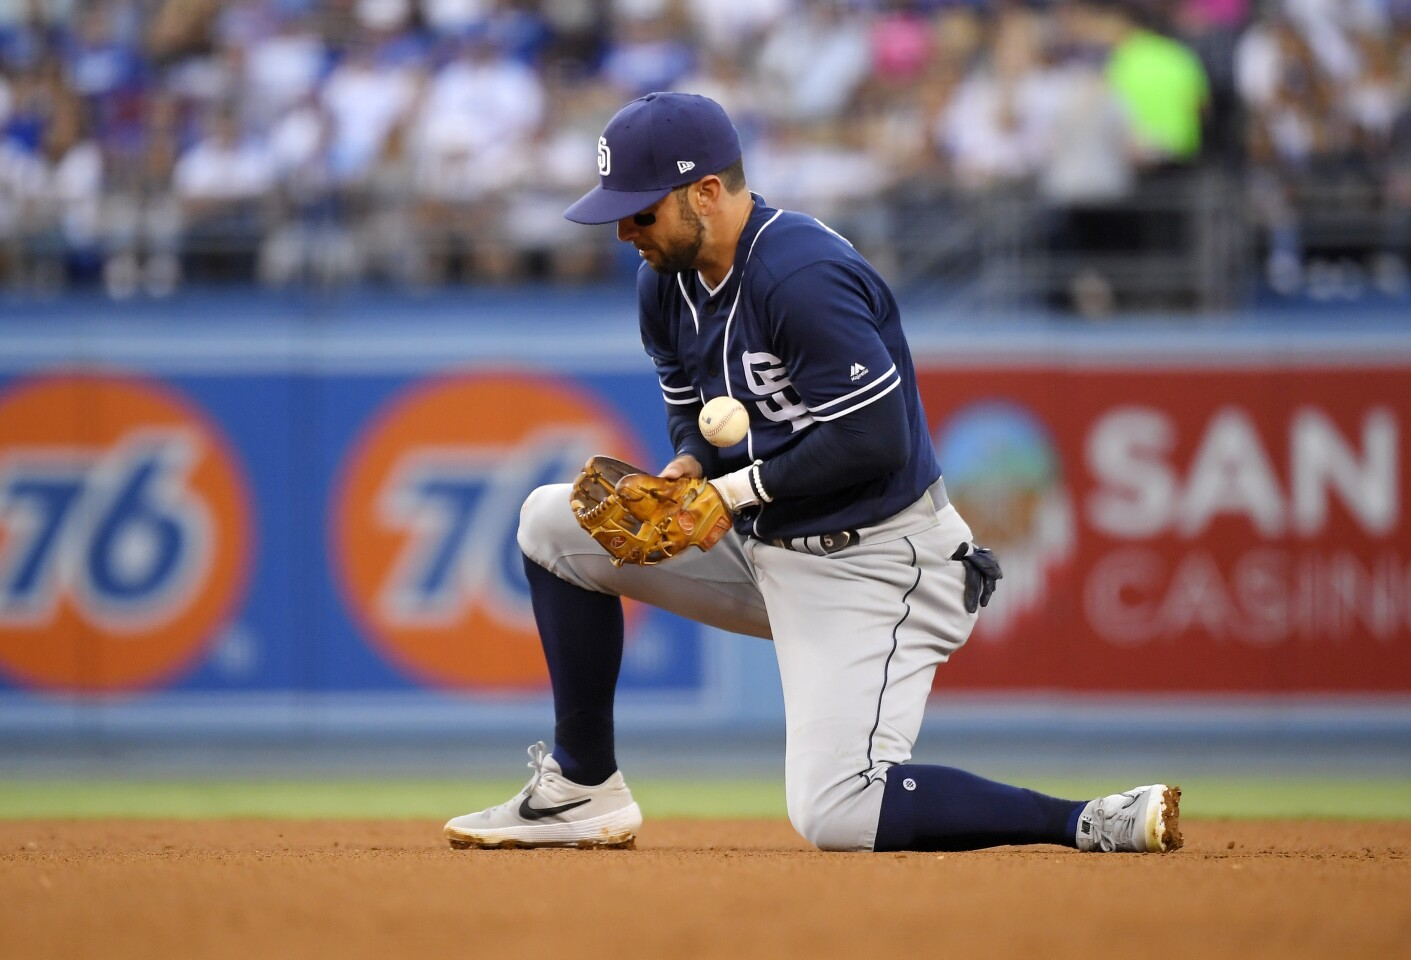 San Diego Padres second baseman Greg Garcia bobbles a ball hit by Los Angeles Dodgers' Matt Beaty during the fifth inning of a baseball game Saturday, Aug. 3, 2019, in Los Angeles. Beaty was safe at first on a fielder's choice to second on the play and one run scored. (AP Photo/Mark J. Terrill)